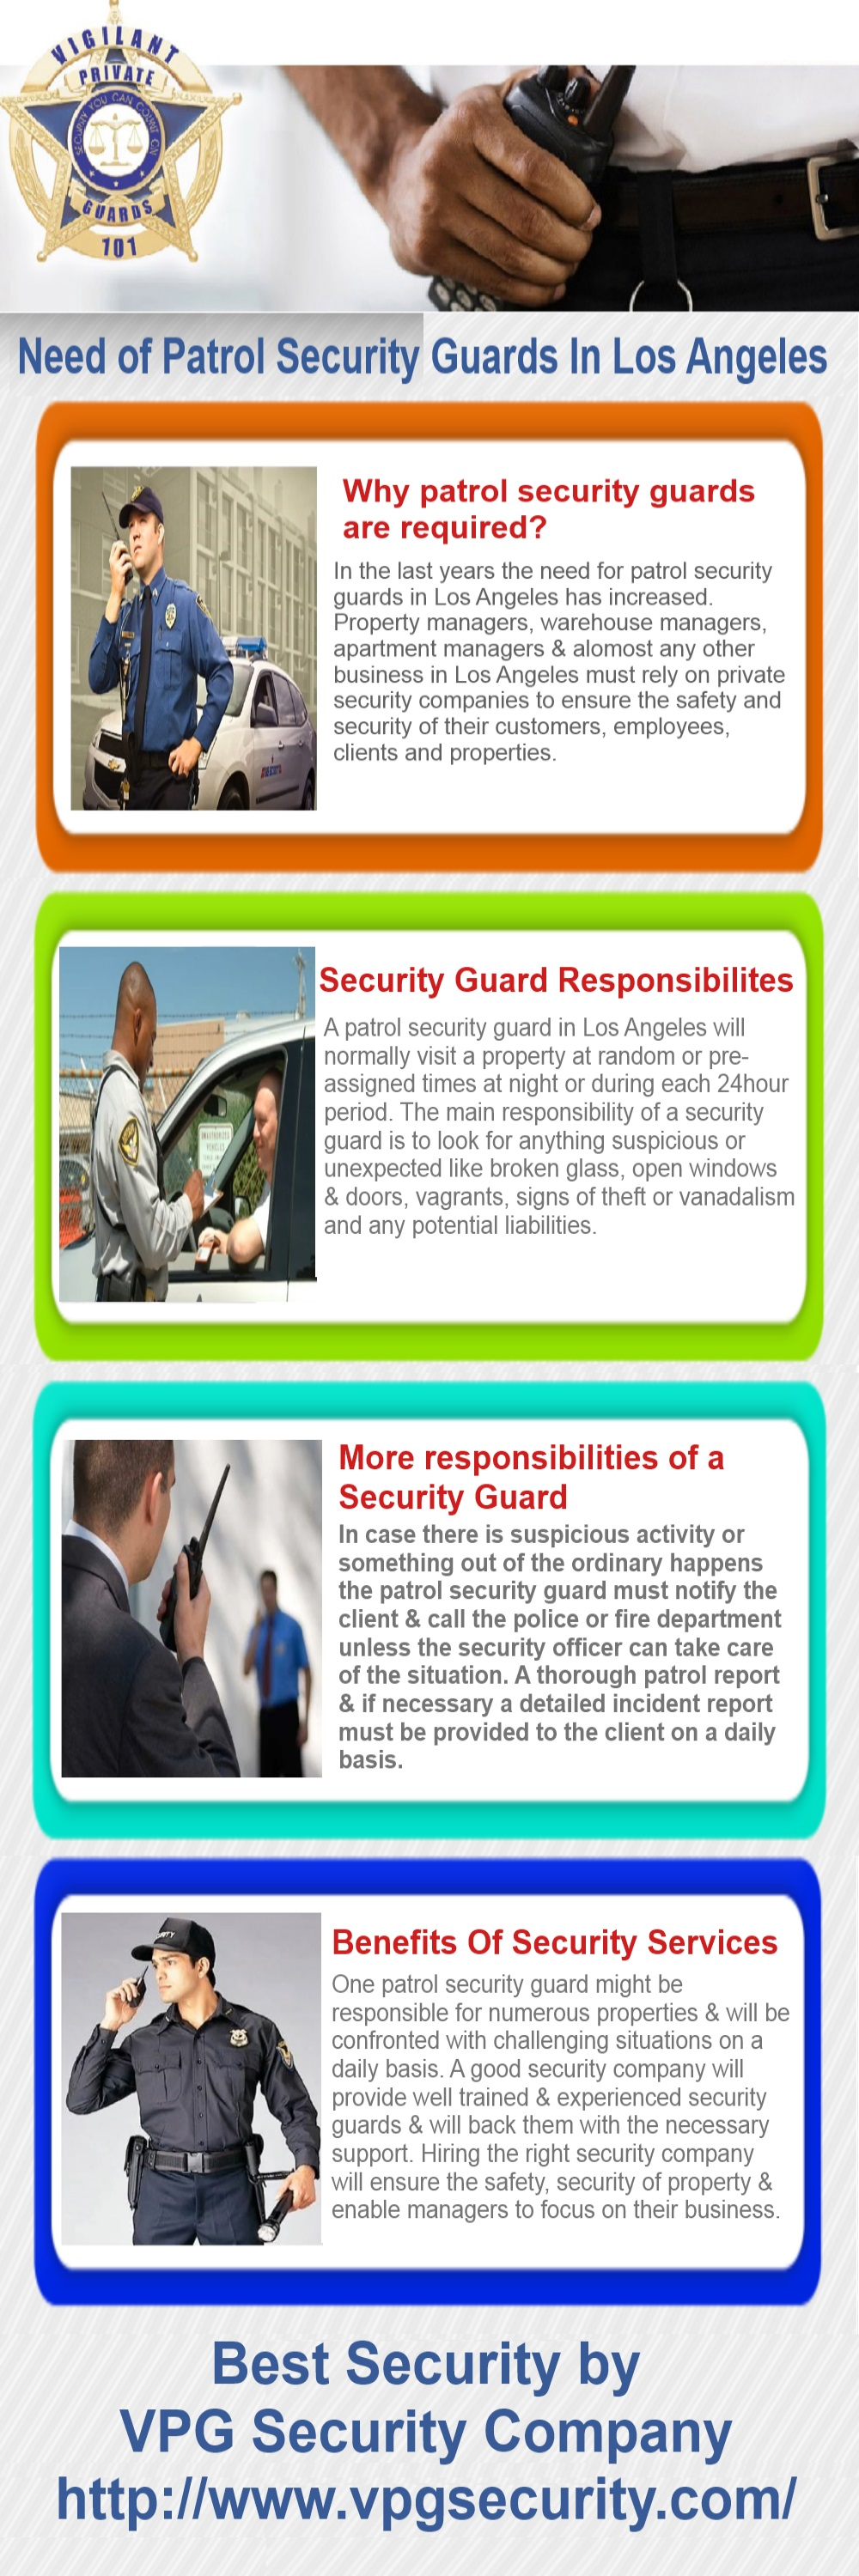 We All Know The Need And Requirement Of Patrol Security Guards In